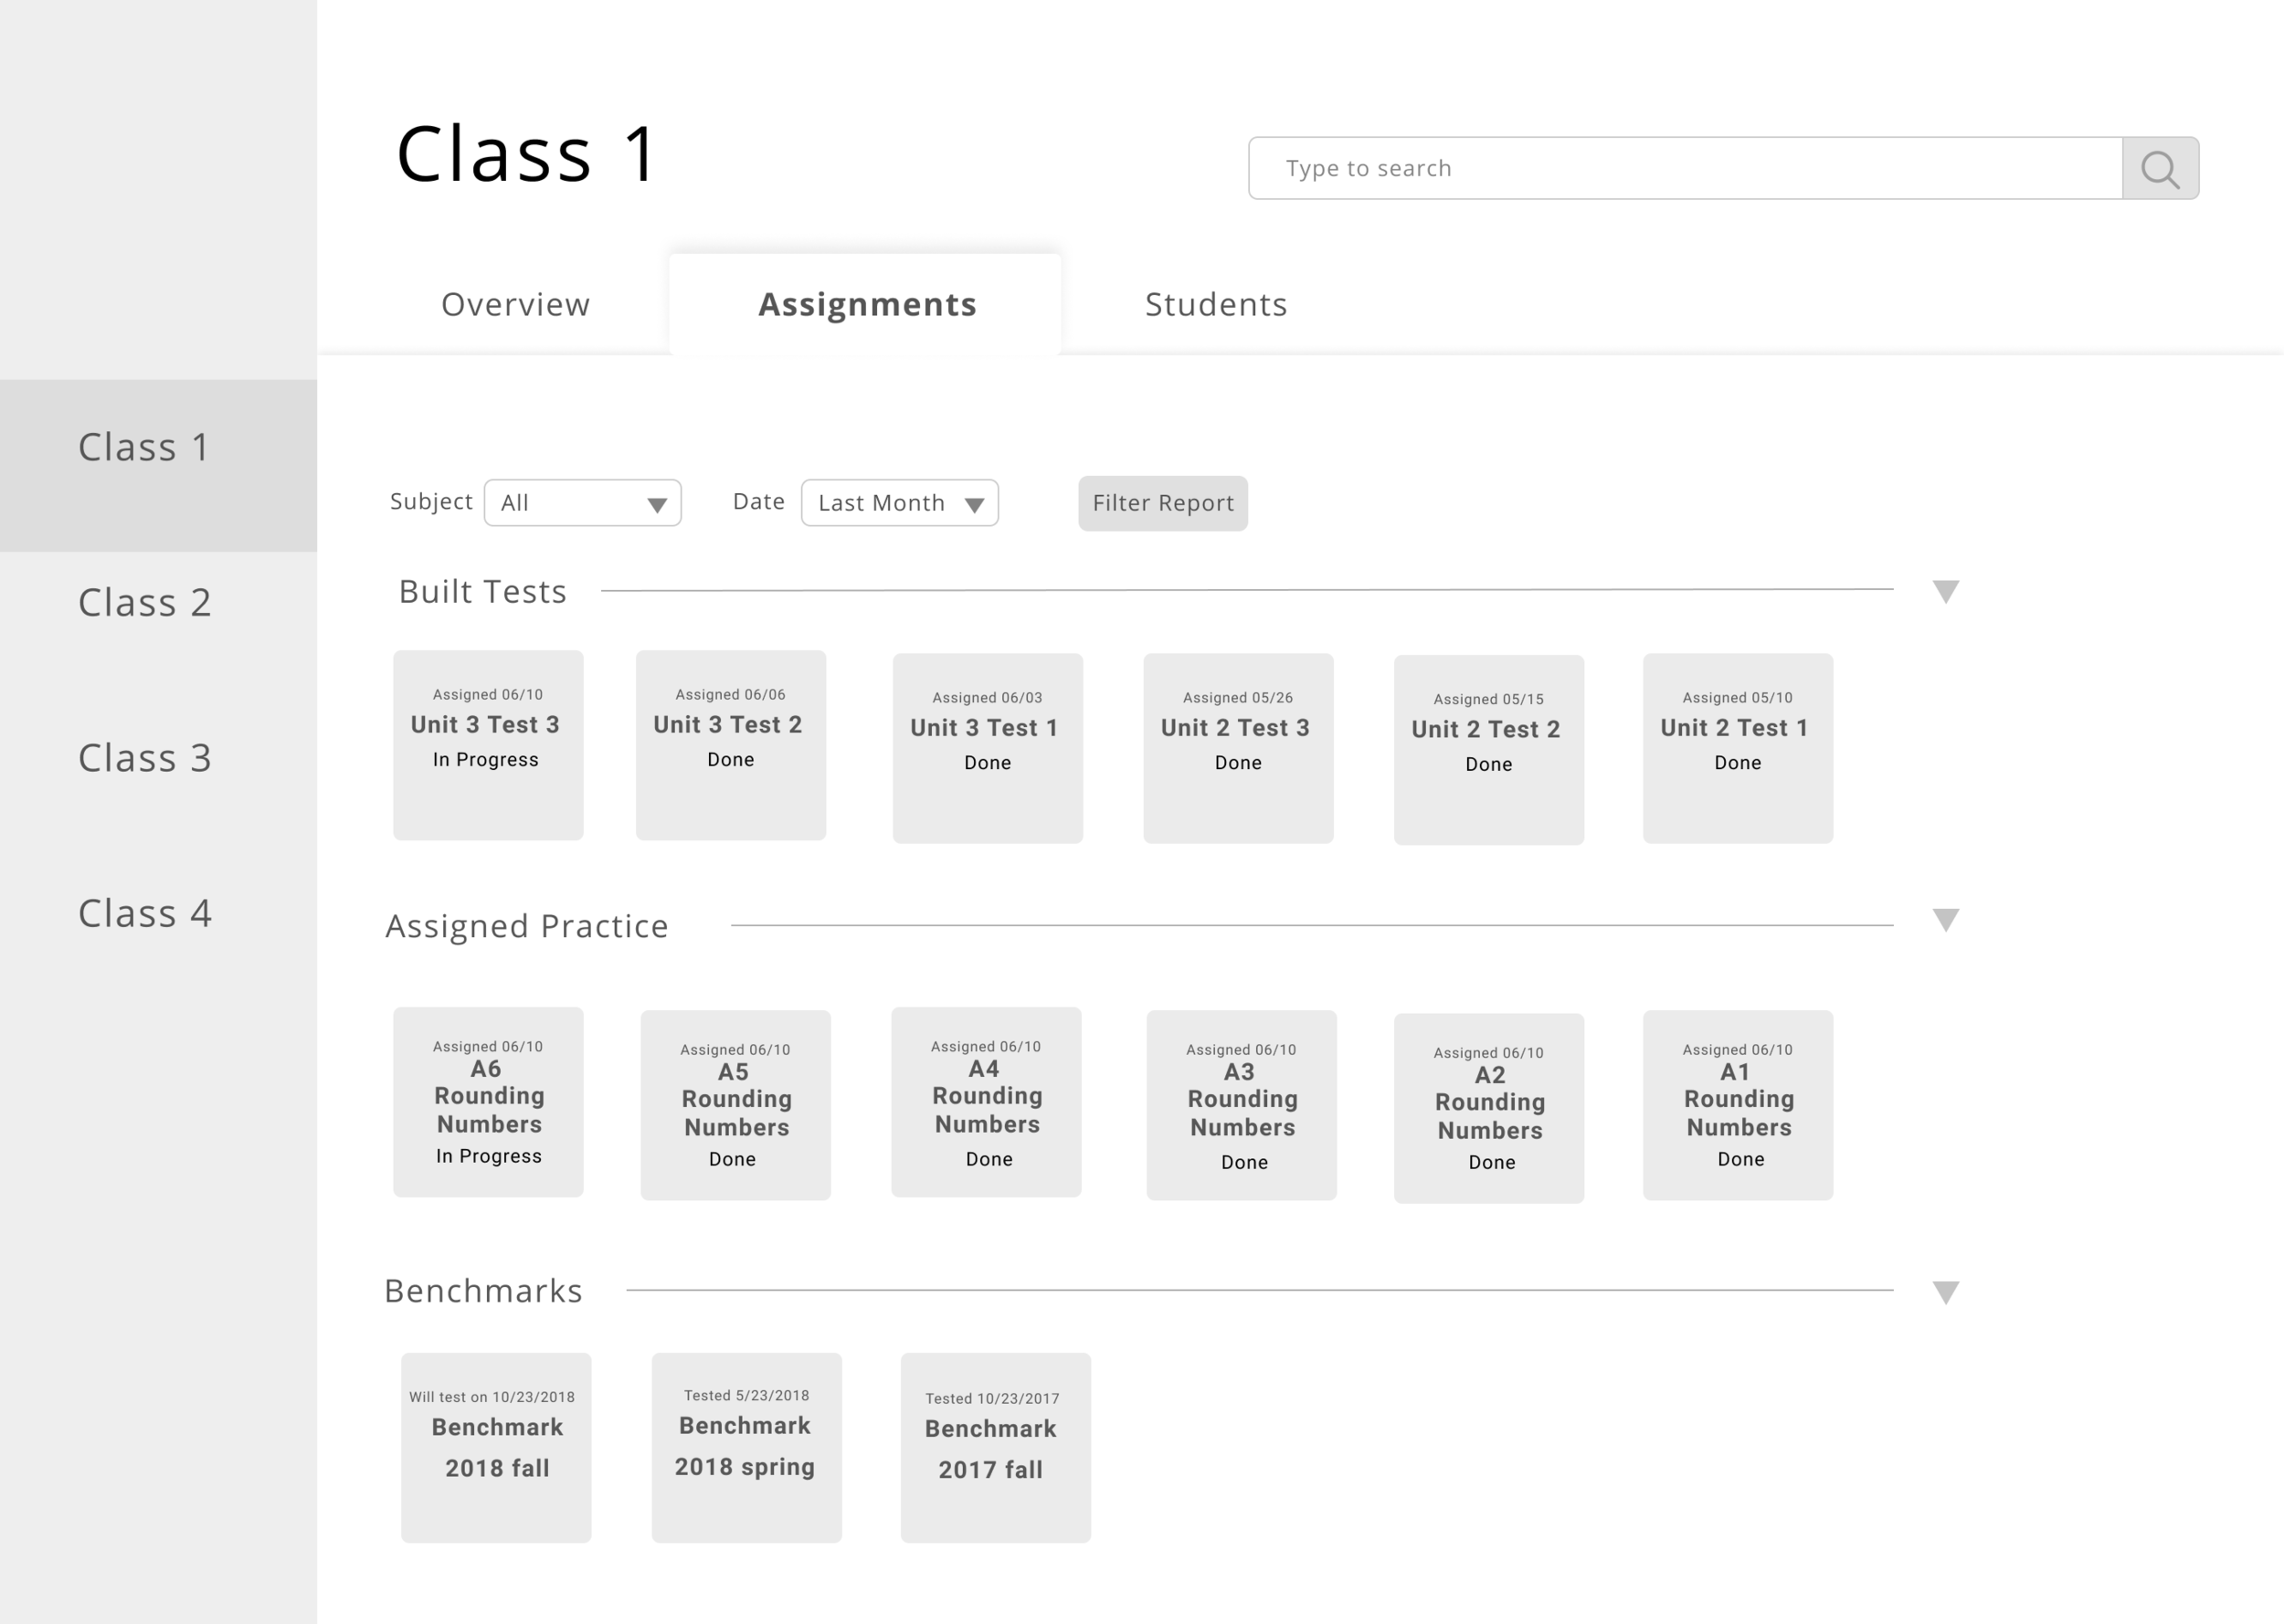 Assignments UI 1.0